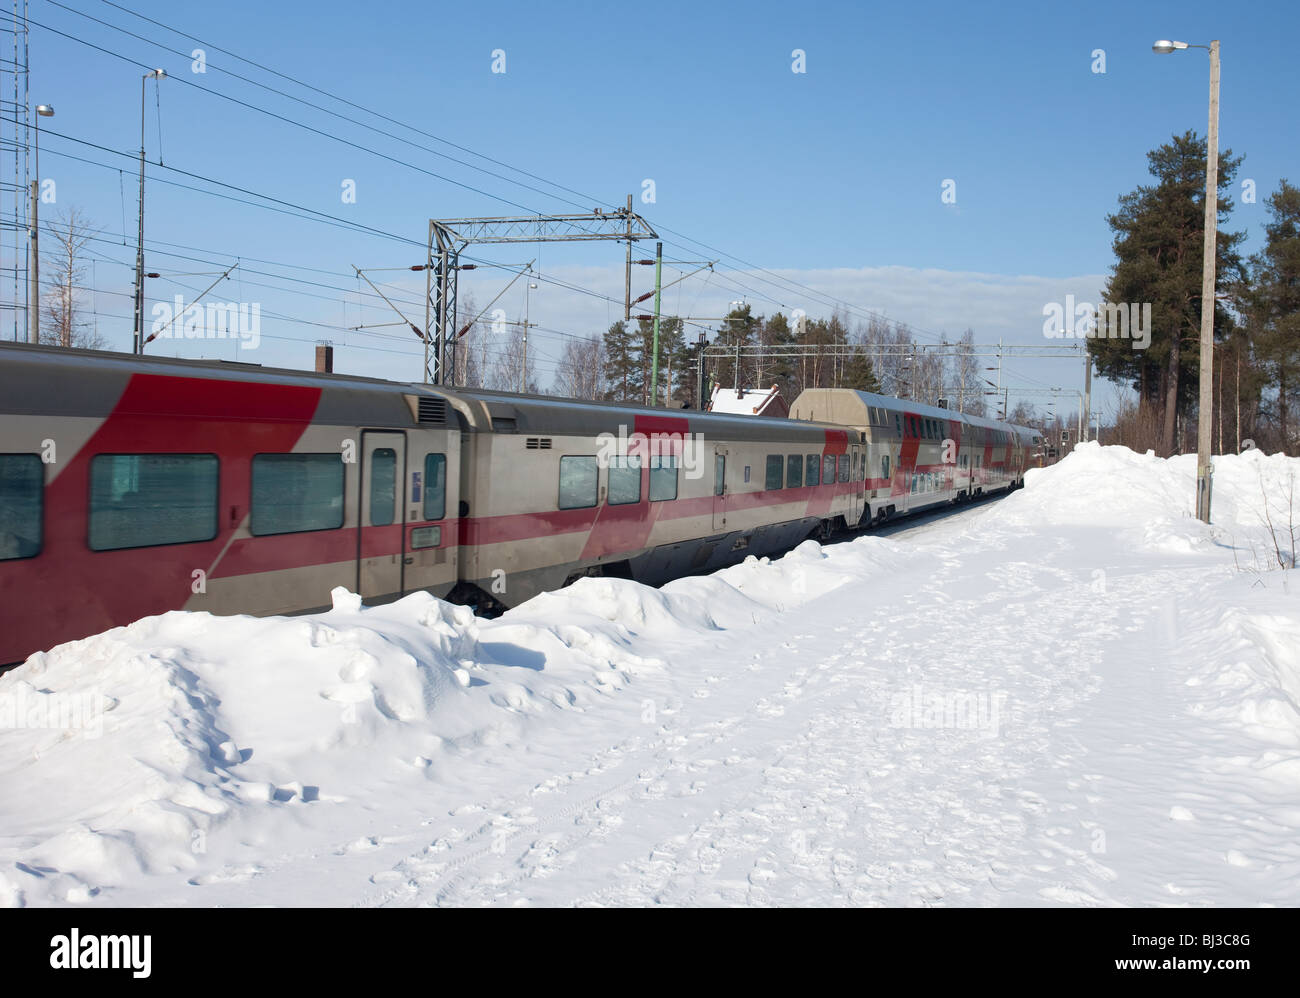 Finnish long distance train leaving from railroad station at Winter , Finland - Stock Image